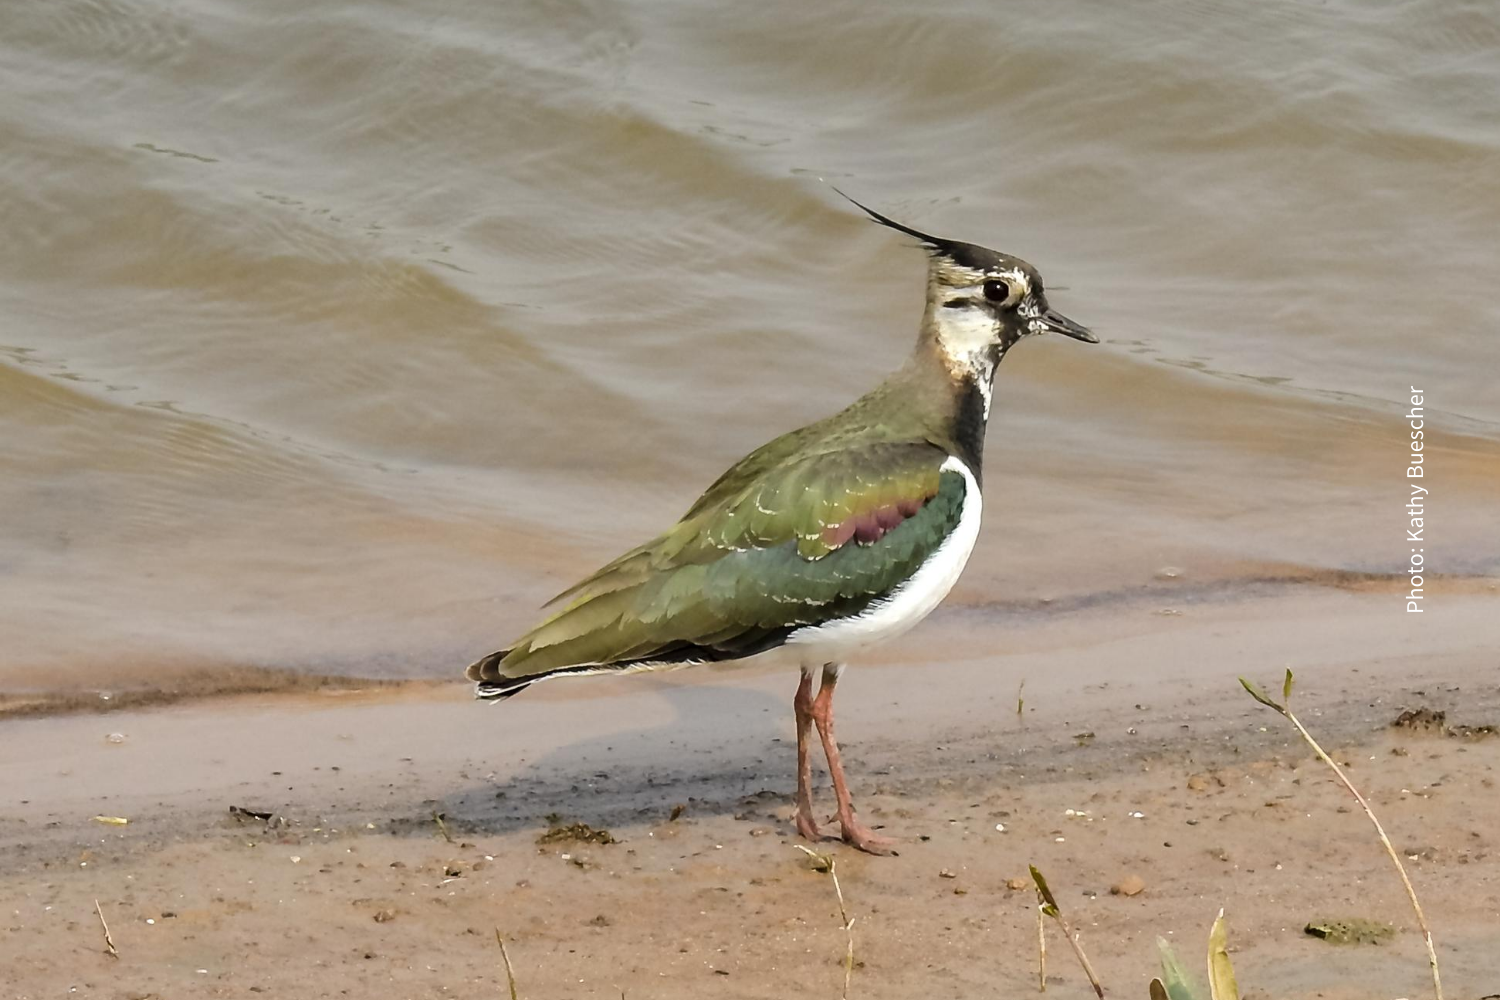 The Lapwing needs our help!